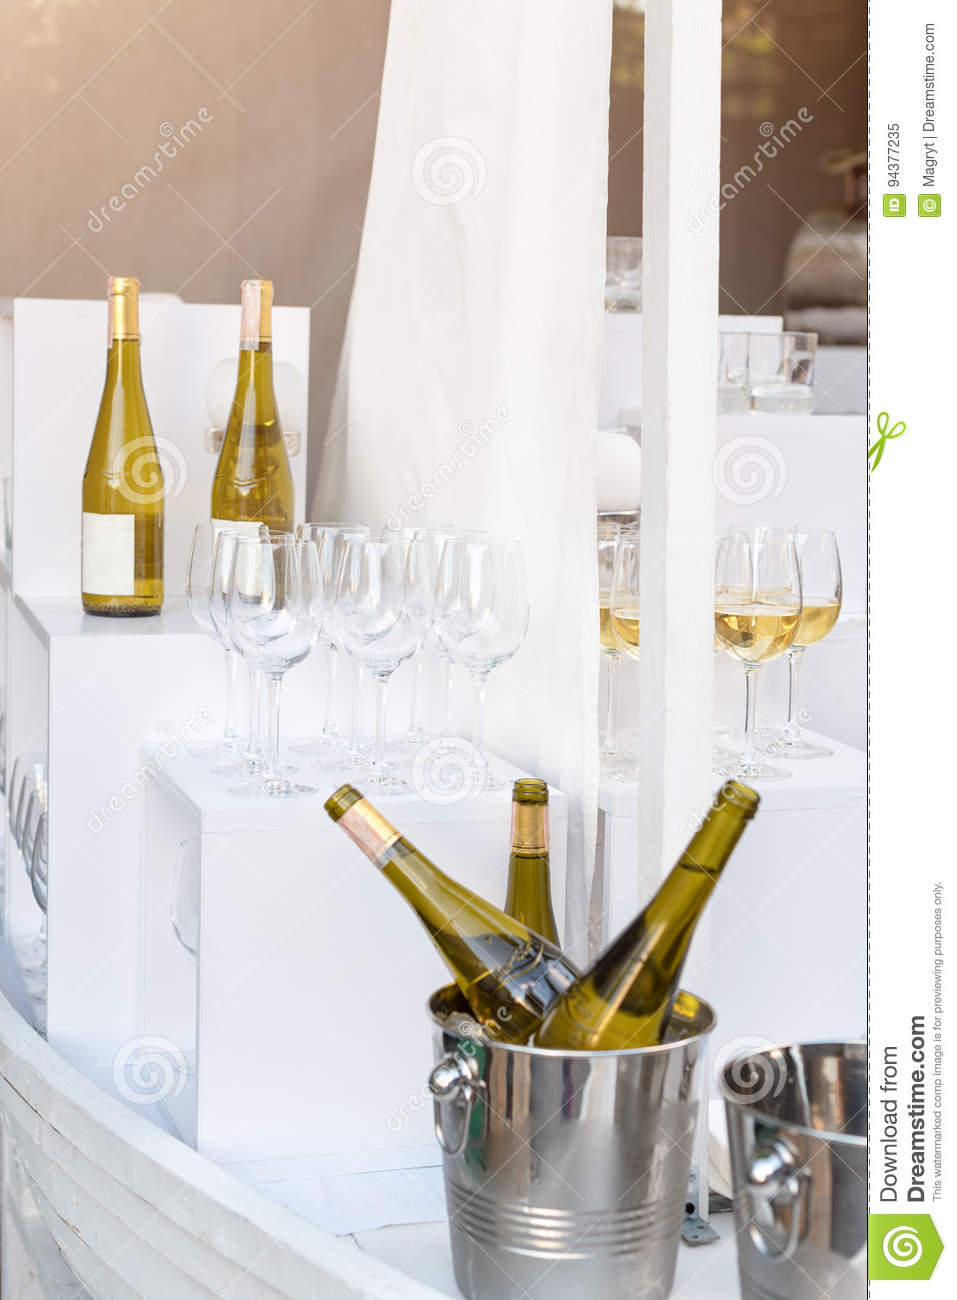 Bottles of white wine standing on serving table. Outdoor party, catering service.